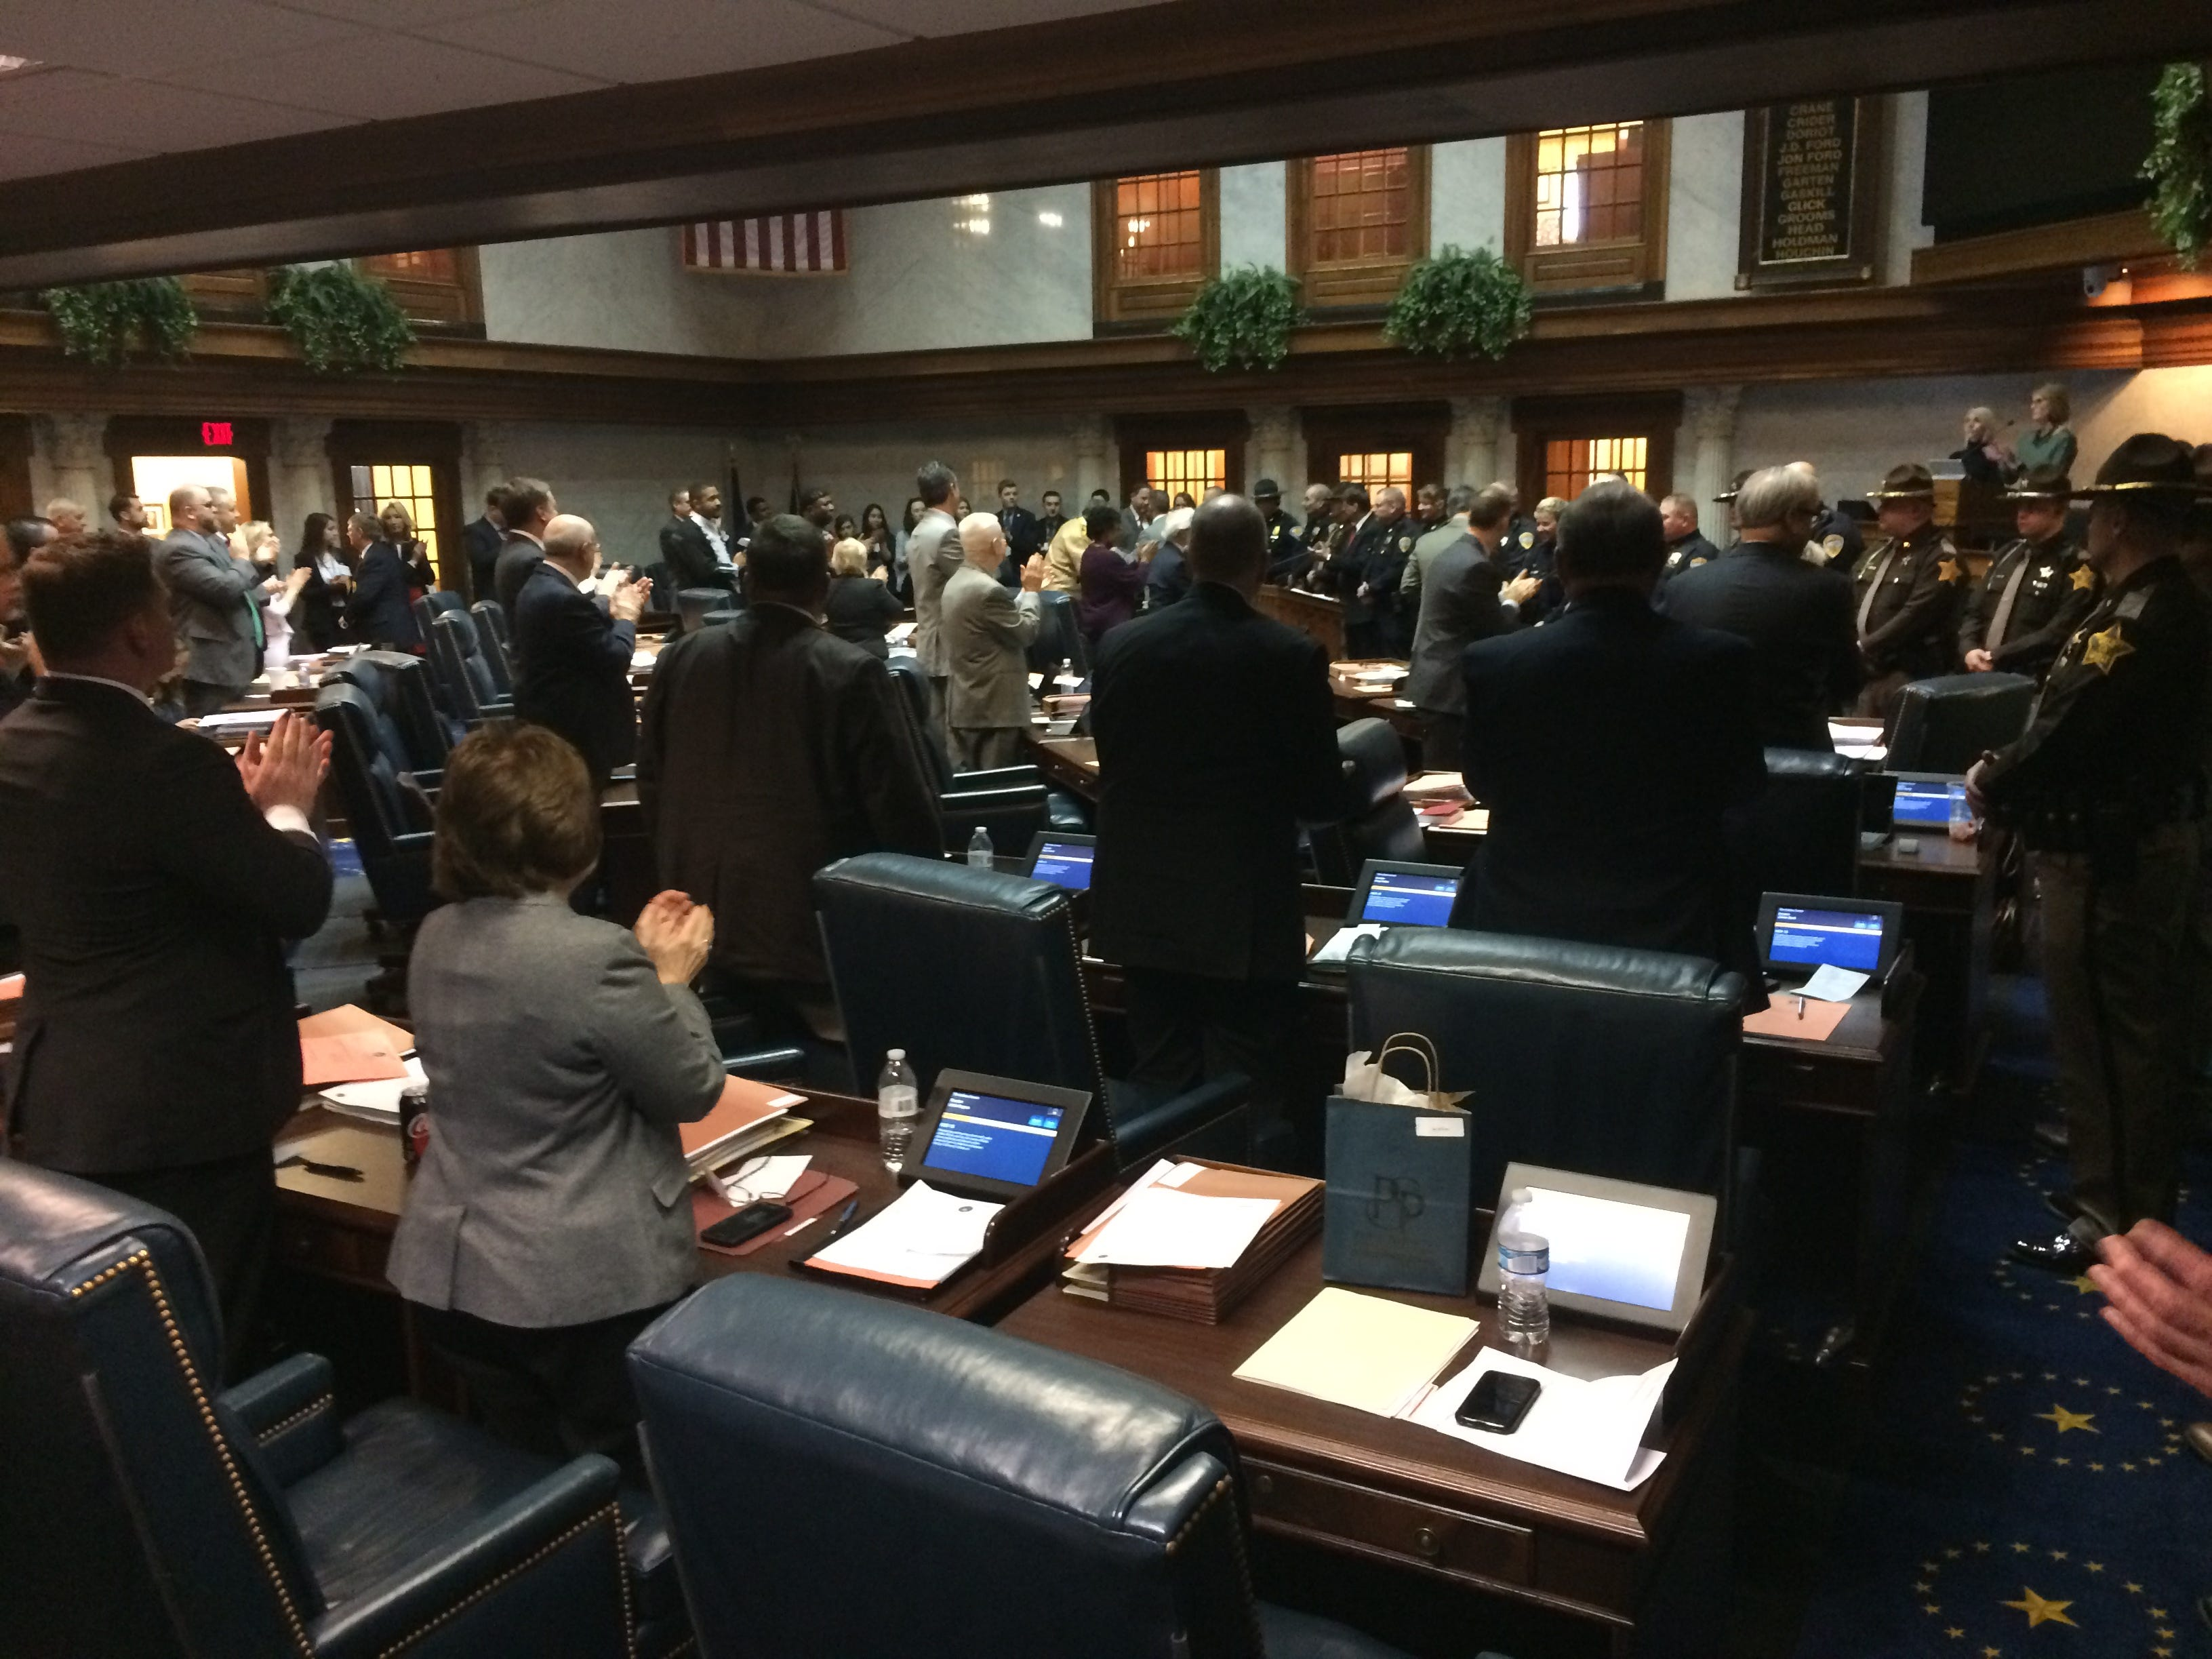 Senate members applaud after passing a resolution to honor school and law enforcement personnel for their actions Dec. 13 at Dennis Intermediate School.